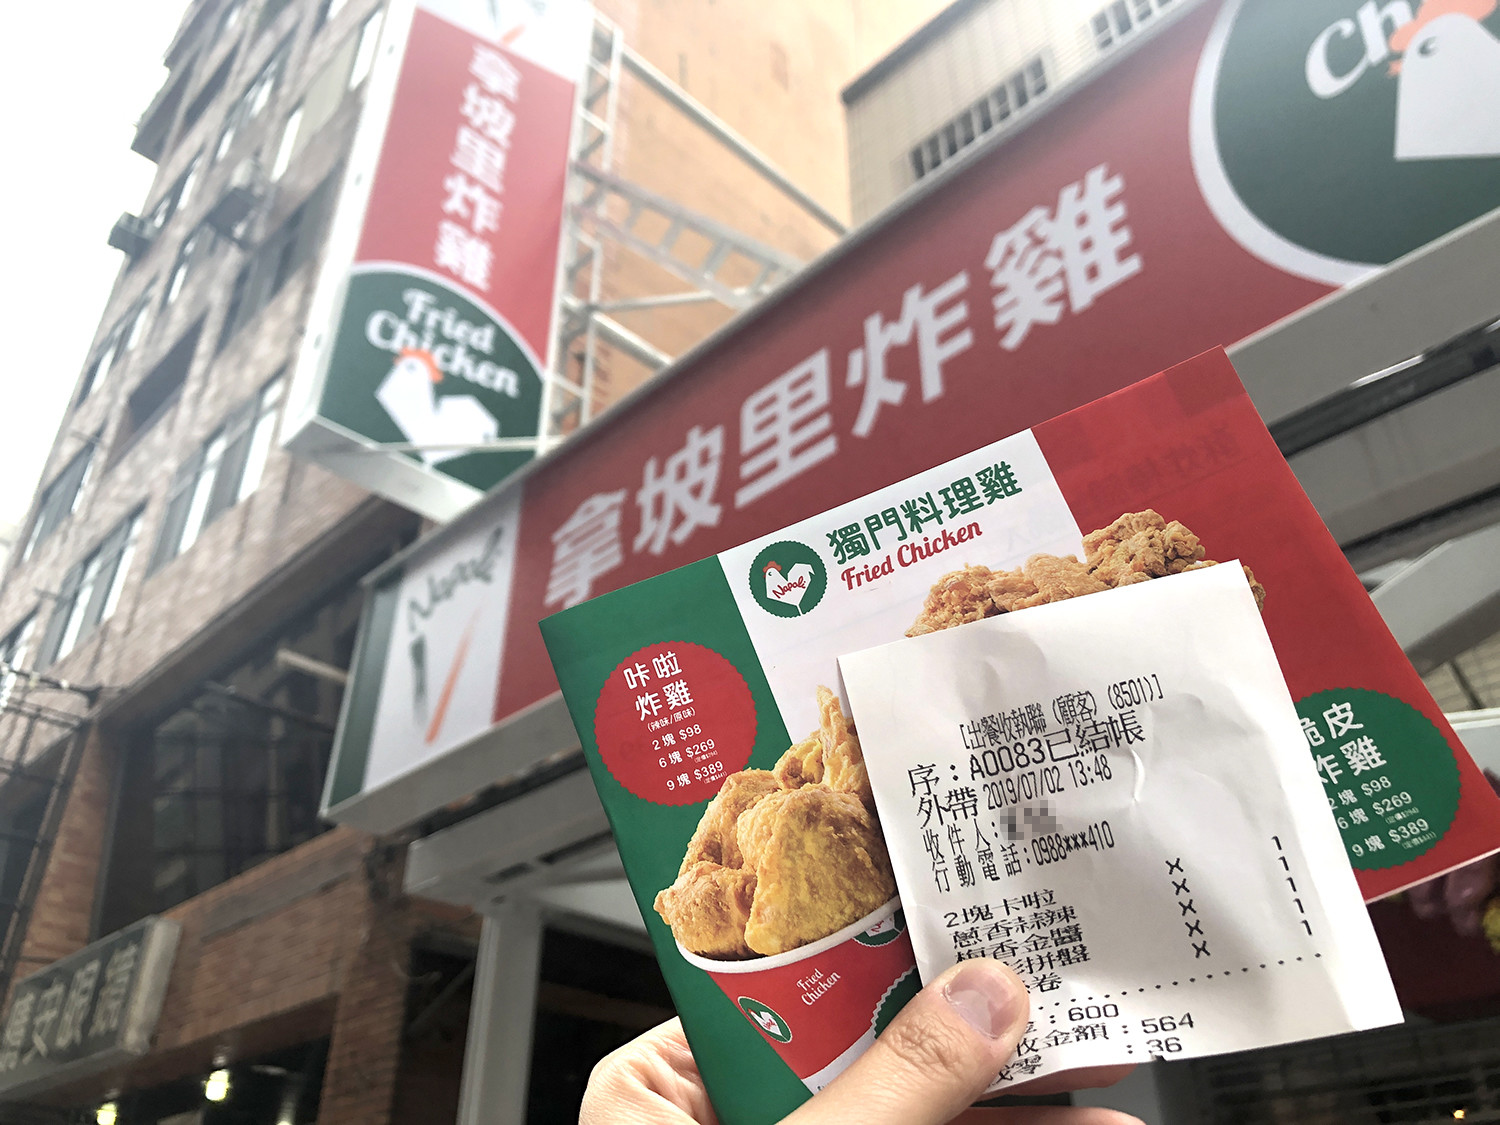 Fast food, Food, Fast food restaurant, Restaurant, Advertising, Flavor, Snack, Cuisine, Mitsui cuisine M, fast food, Food, Fast food, Dish, Snack, Cuisine, Comfort food, Take-out food, Fried food, Side dish, Advertising